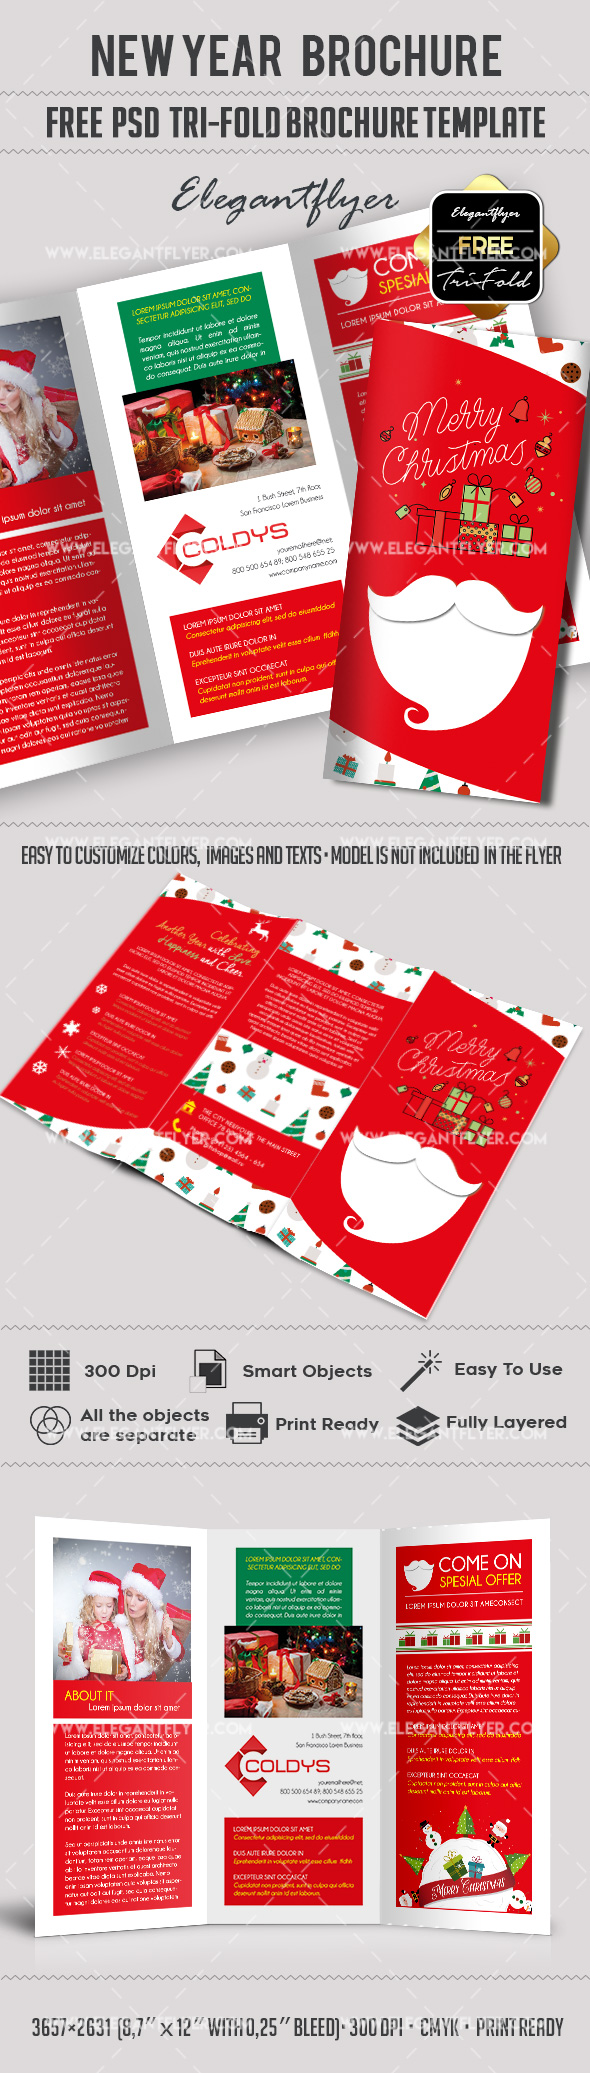 New Year – Free Tri-Fold PSD Brochure Template